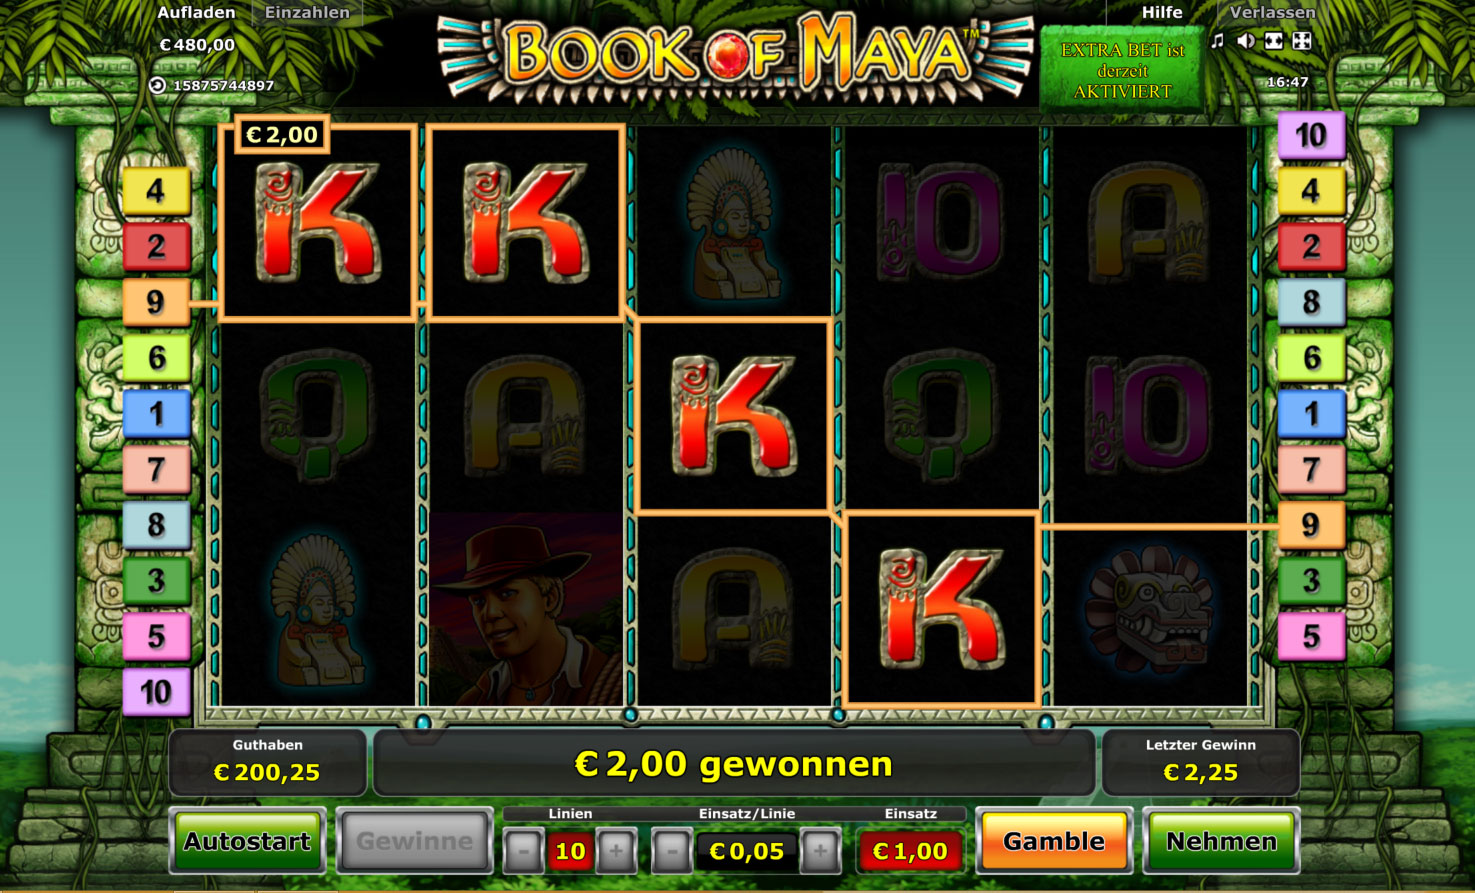 book of ra casino online maya symbole